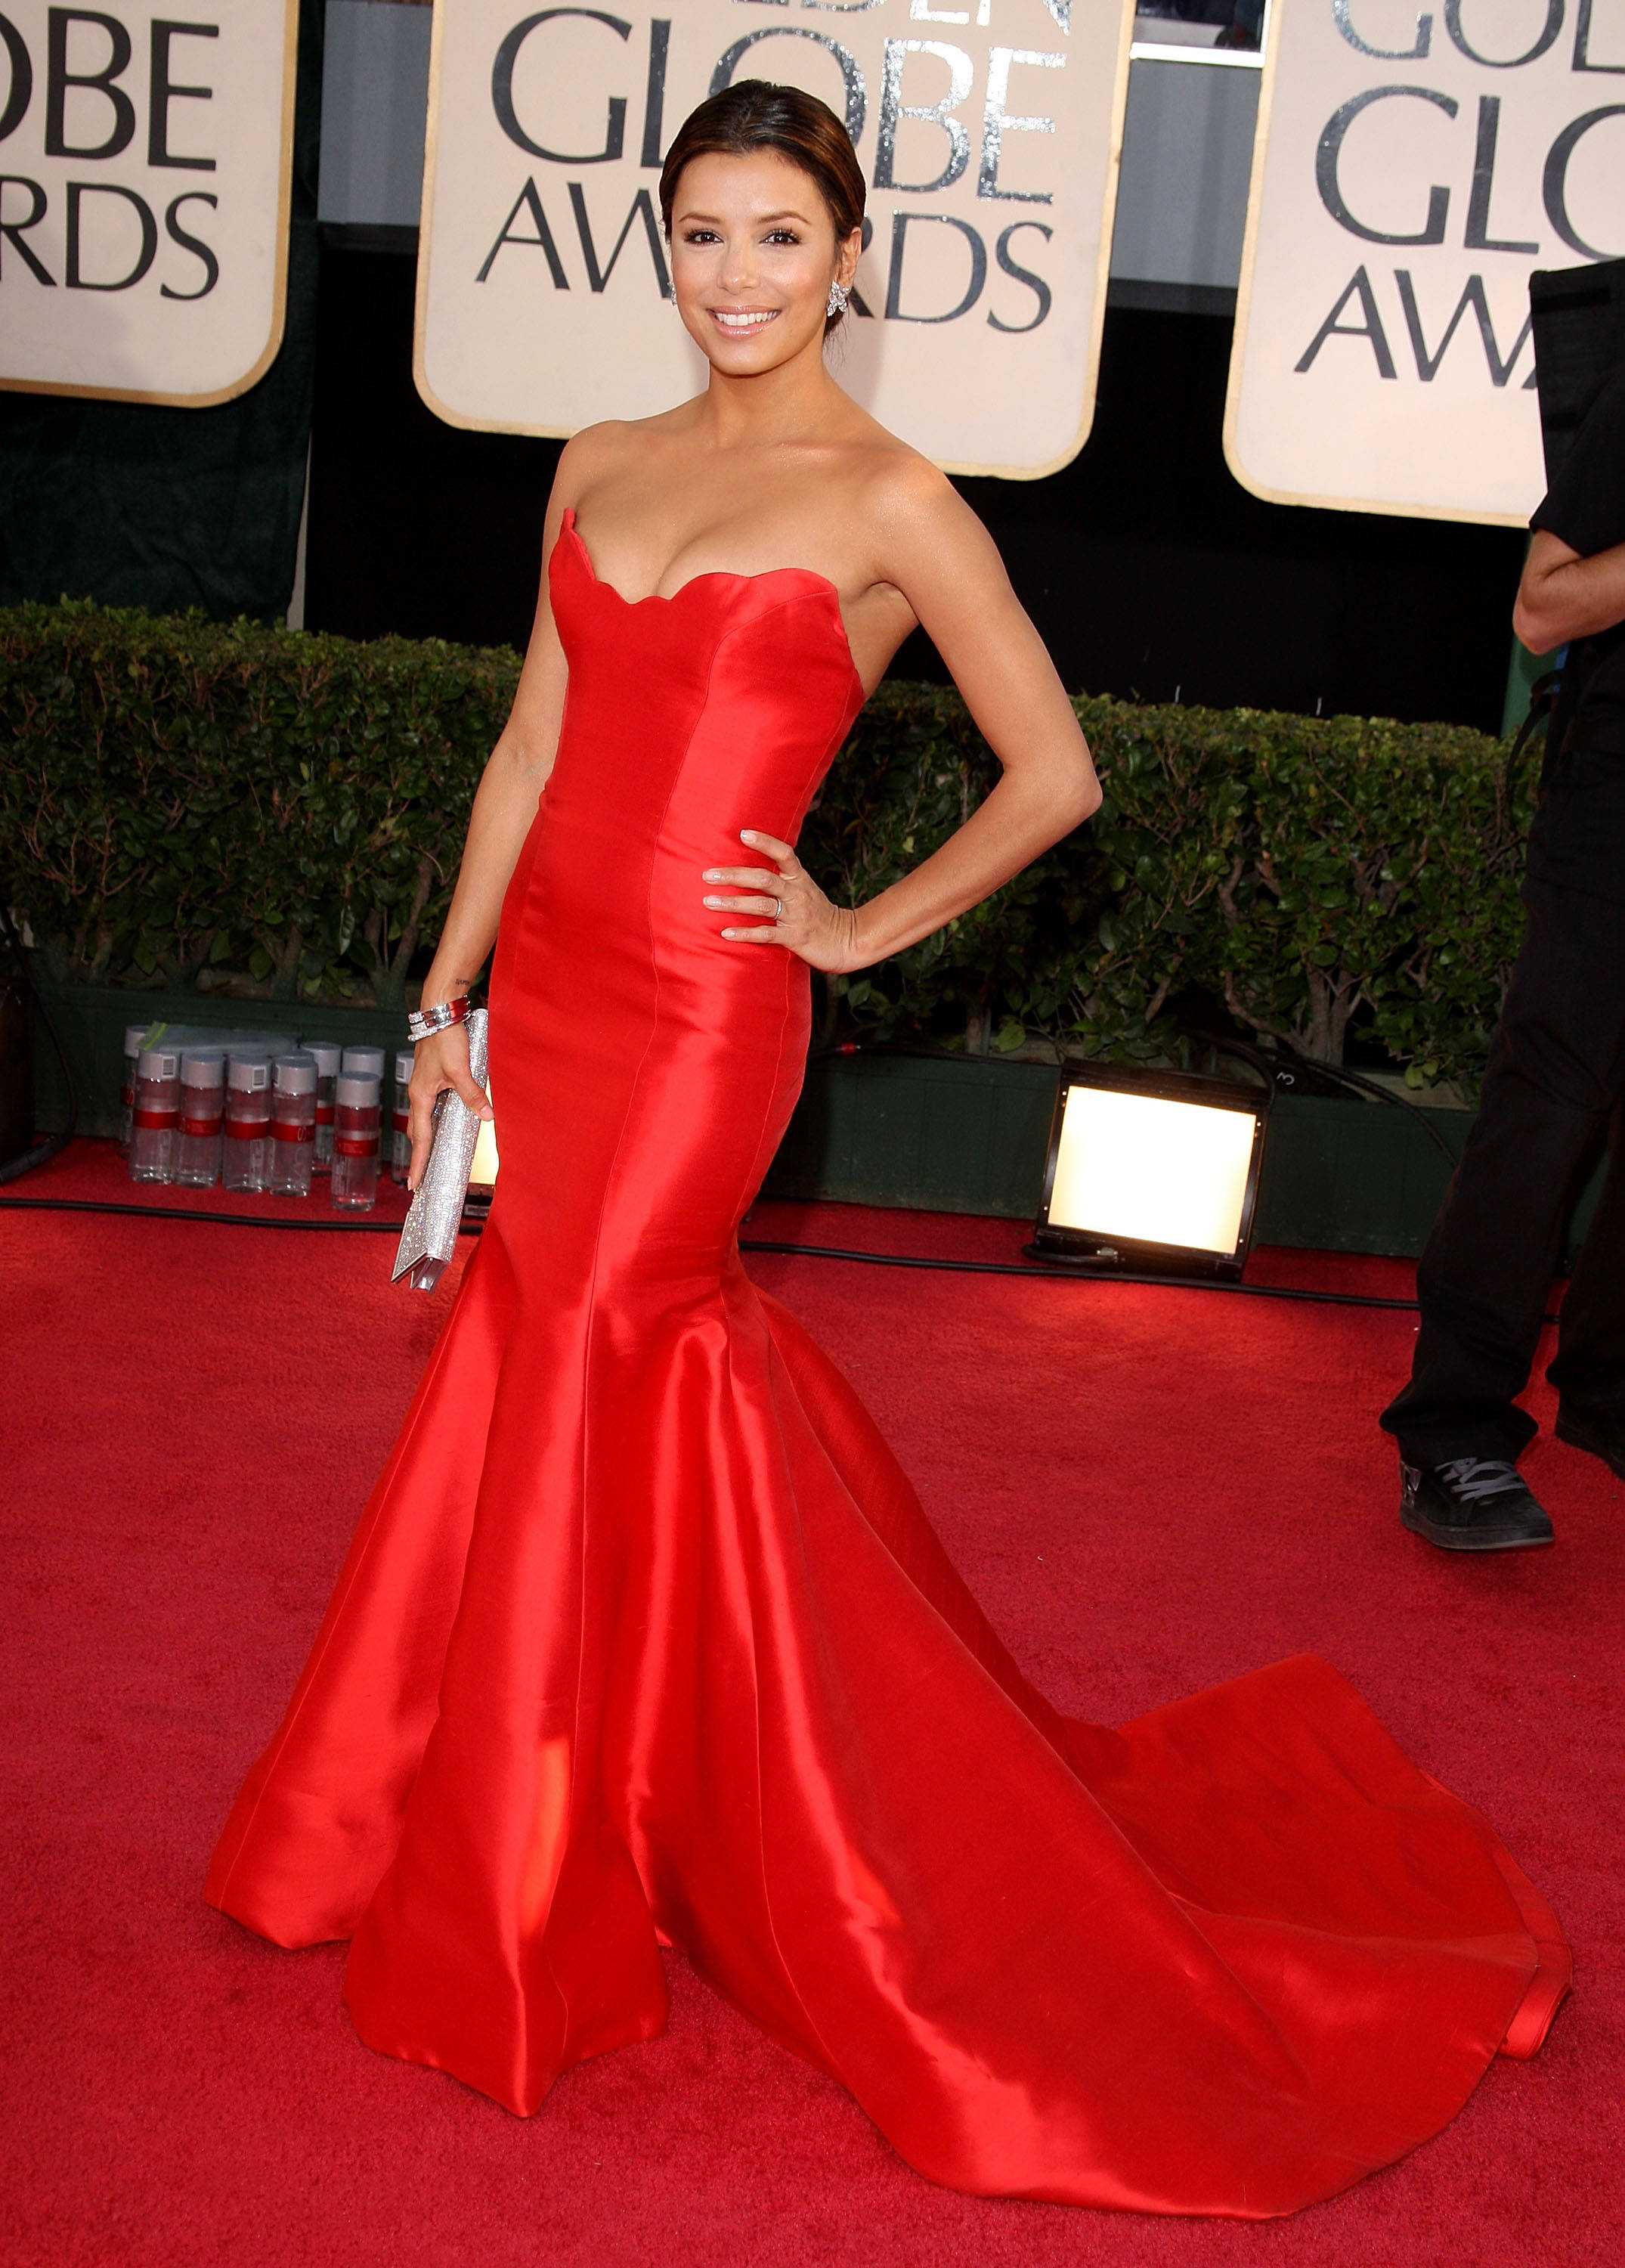 BEVERLY HILTON, CA - JANUARY 11: Actress Eva Longoria Parker arrives at the 66th Annual Golden Globe Awards held at the Beverly Hilton Hotel on January 11, 2009 in Beverly Hills, California. (Photo by Jason Merritt/Getty Images)